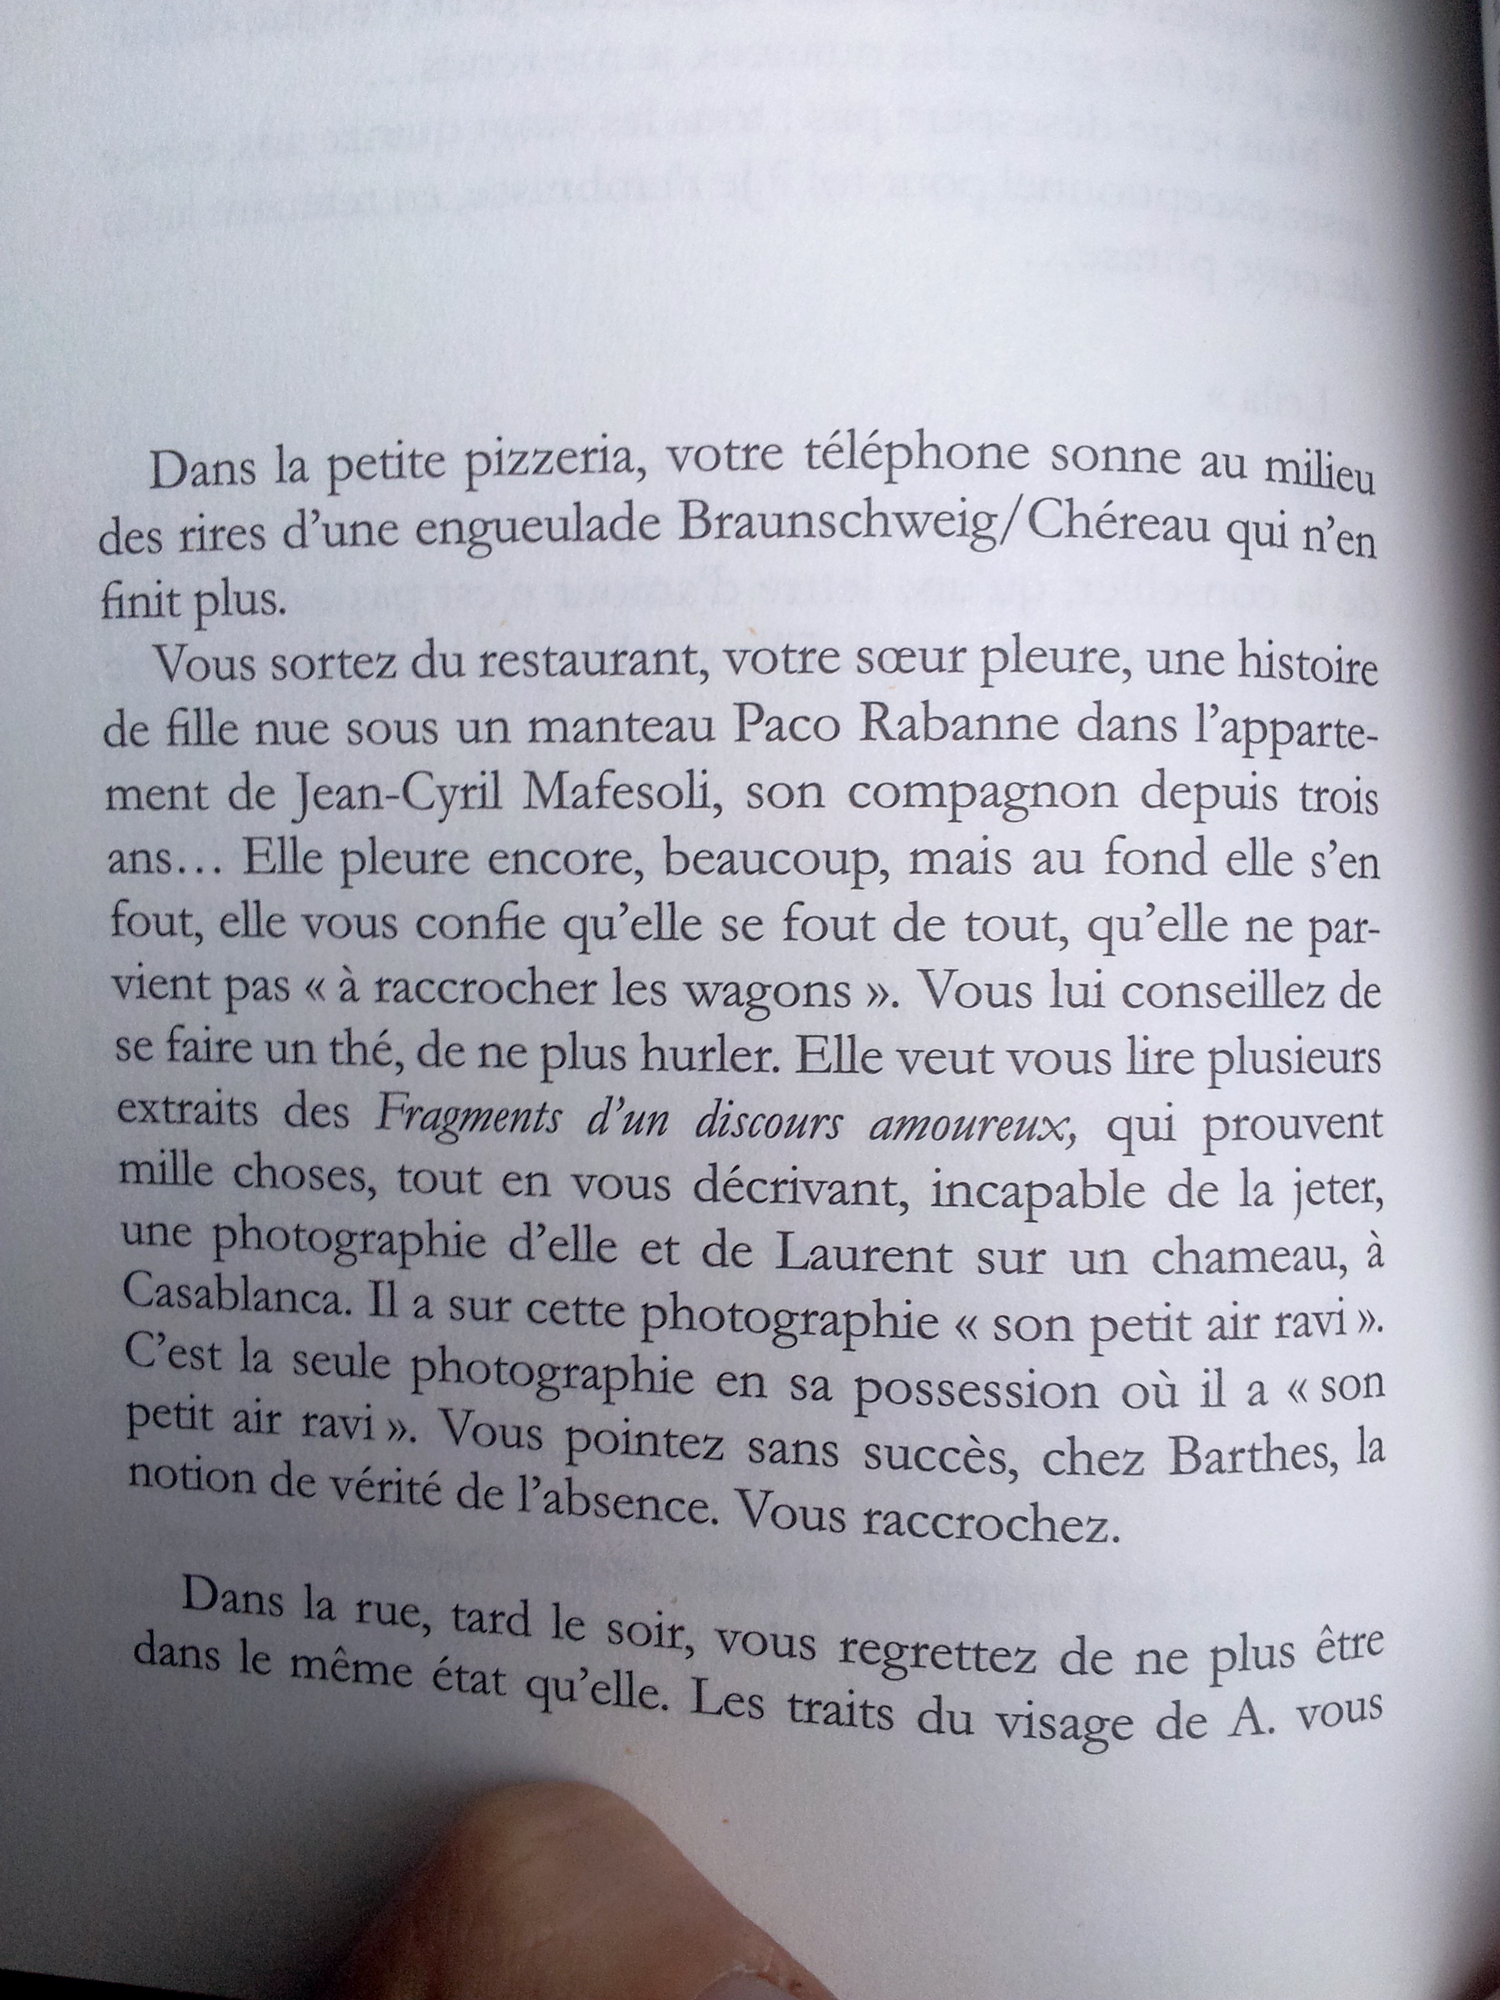 La Disparition du monde réel (page 94), Marc Molk, collection « Qui Vive », éditions Buchet Chastel